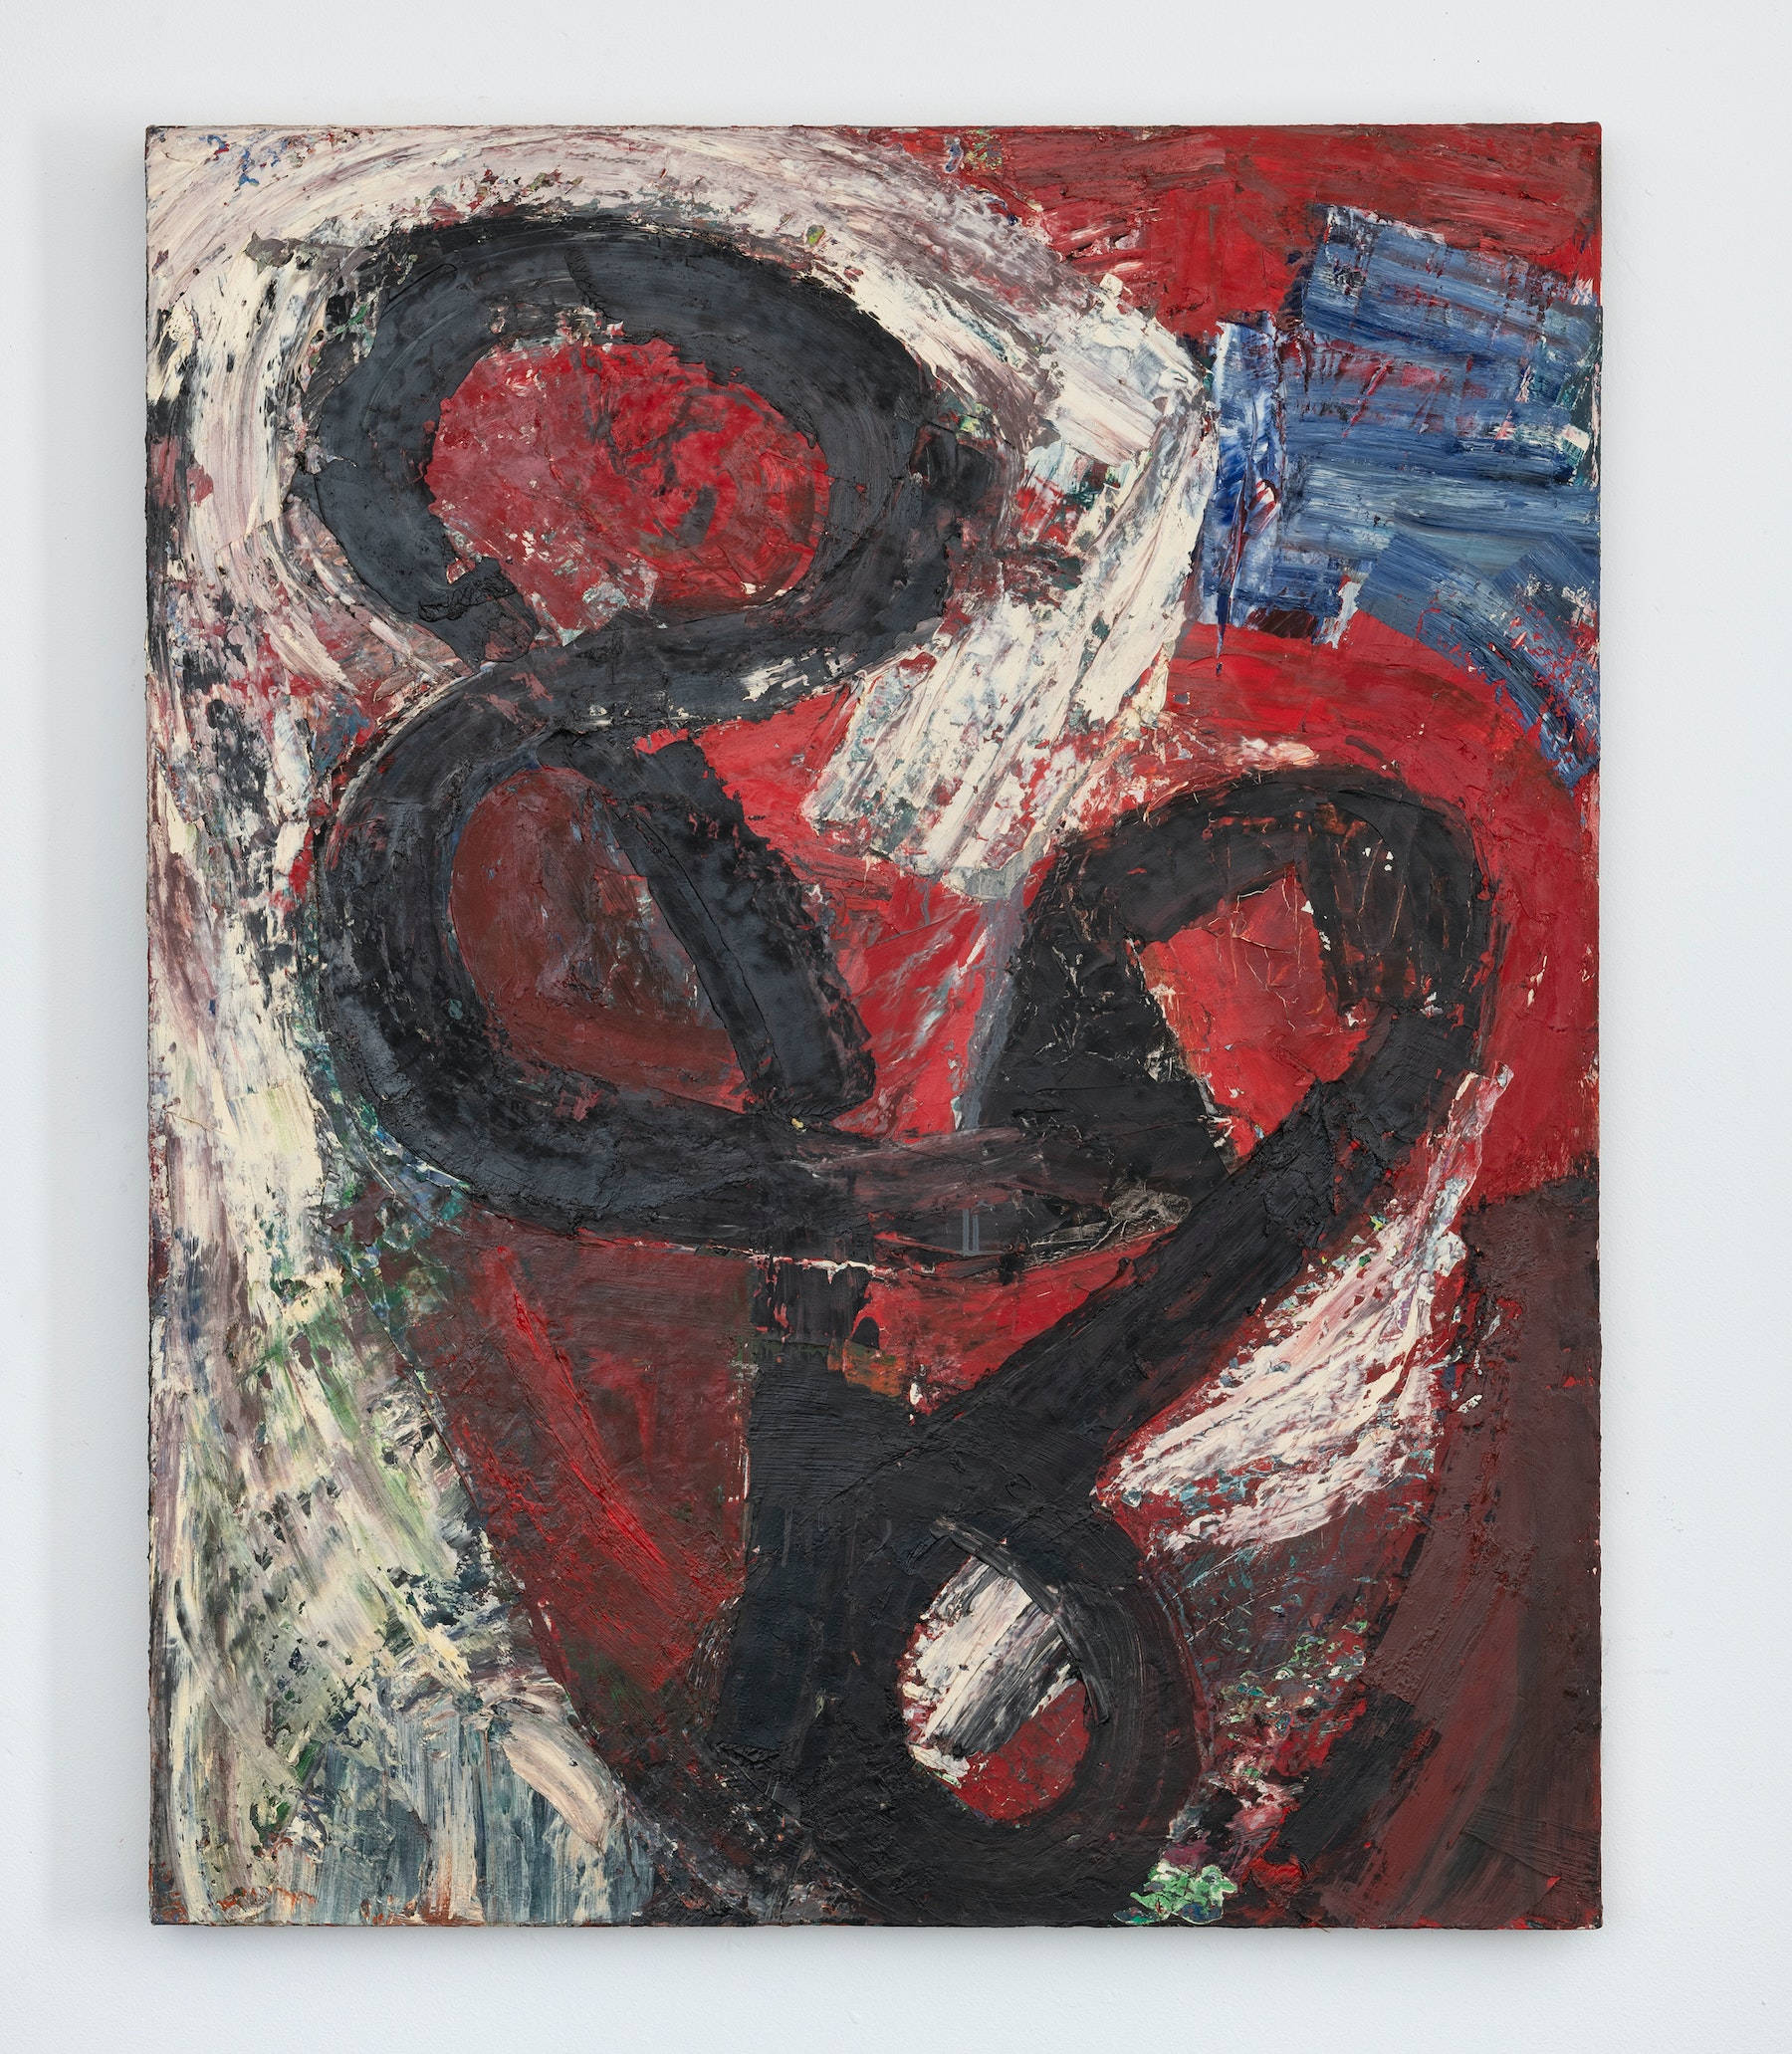 """Louise Fishman """"DUTIES OF THE HEART,"""" 1984 Oil on linen 40 x 32"""" [HxW] (101.6 x 81.28 cm) Inventory #FIS173 Courtesy of the artist and Vielmetter Los Angeles Photo credit: Adam Reich"""